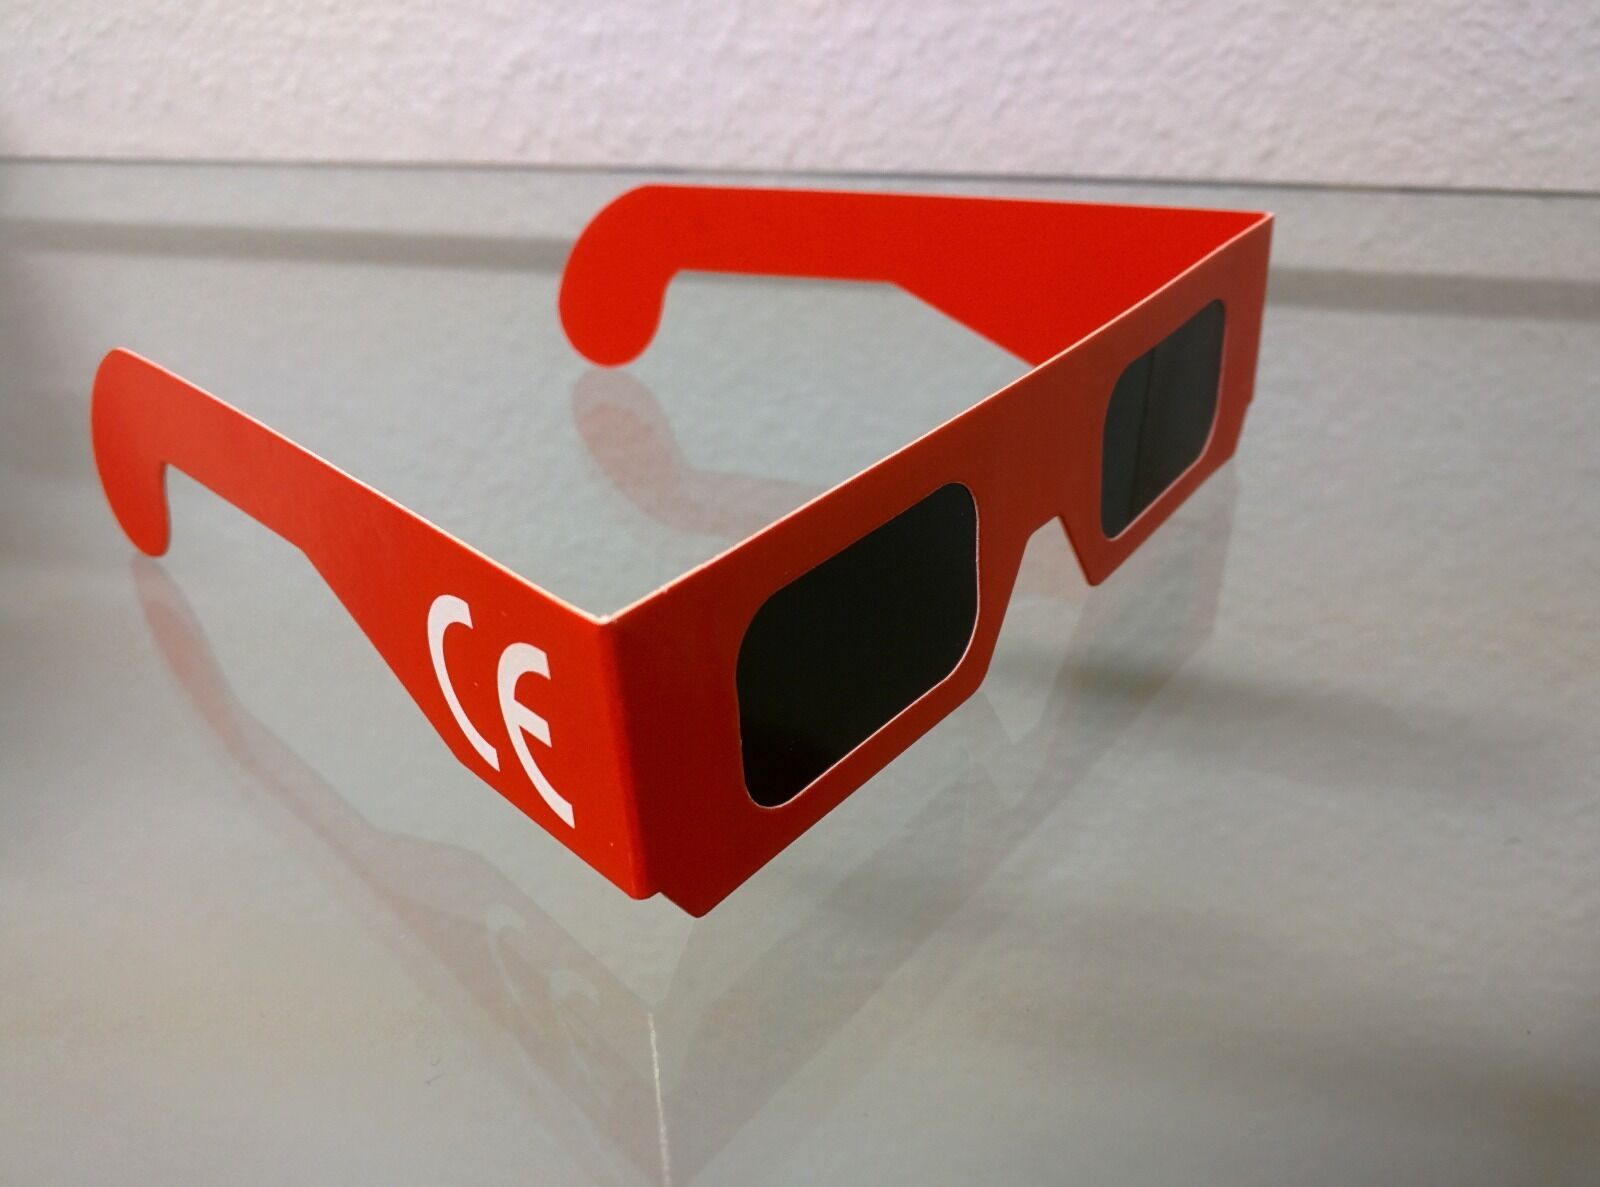 Solar eclipse glasses (box of 1000) - CE marking - Red